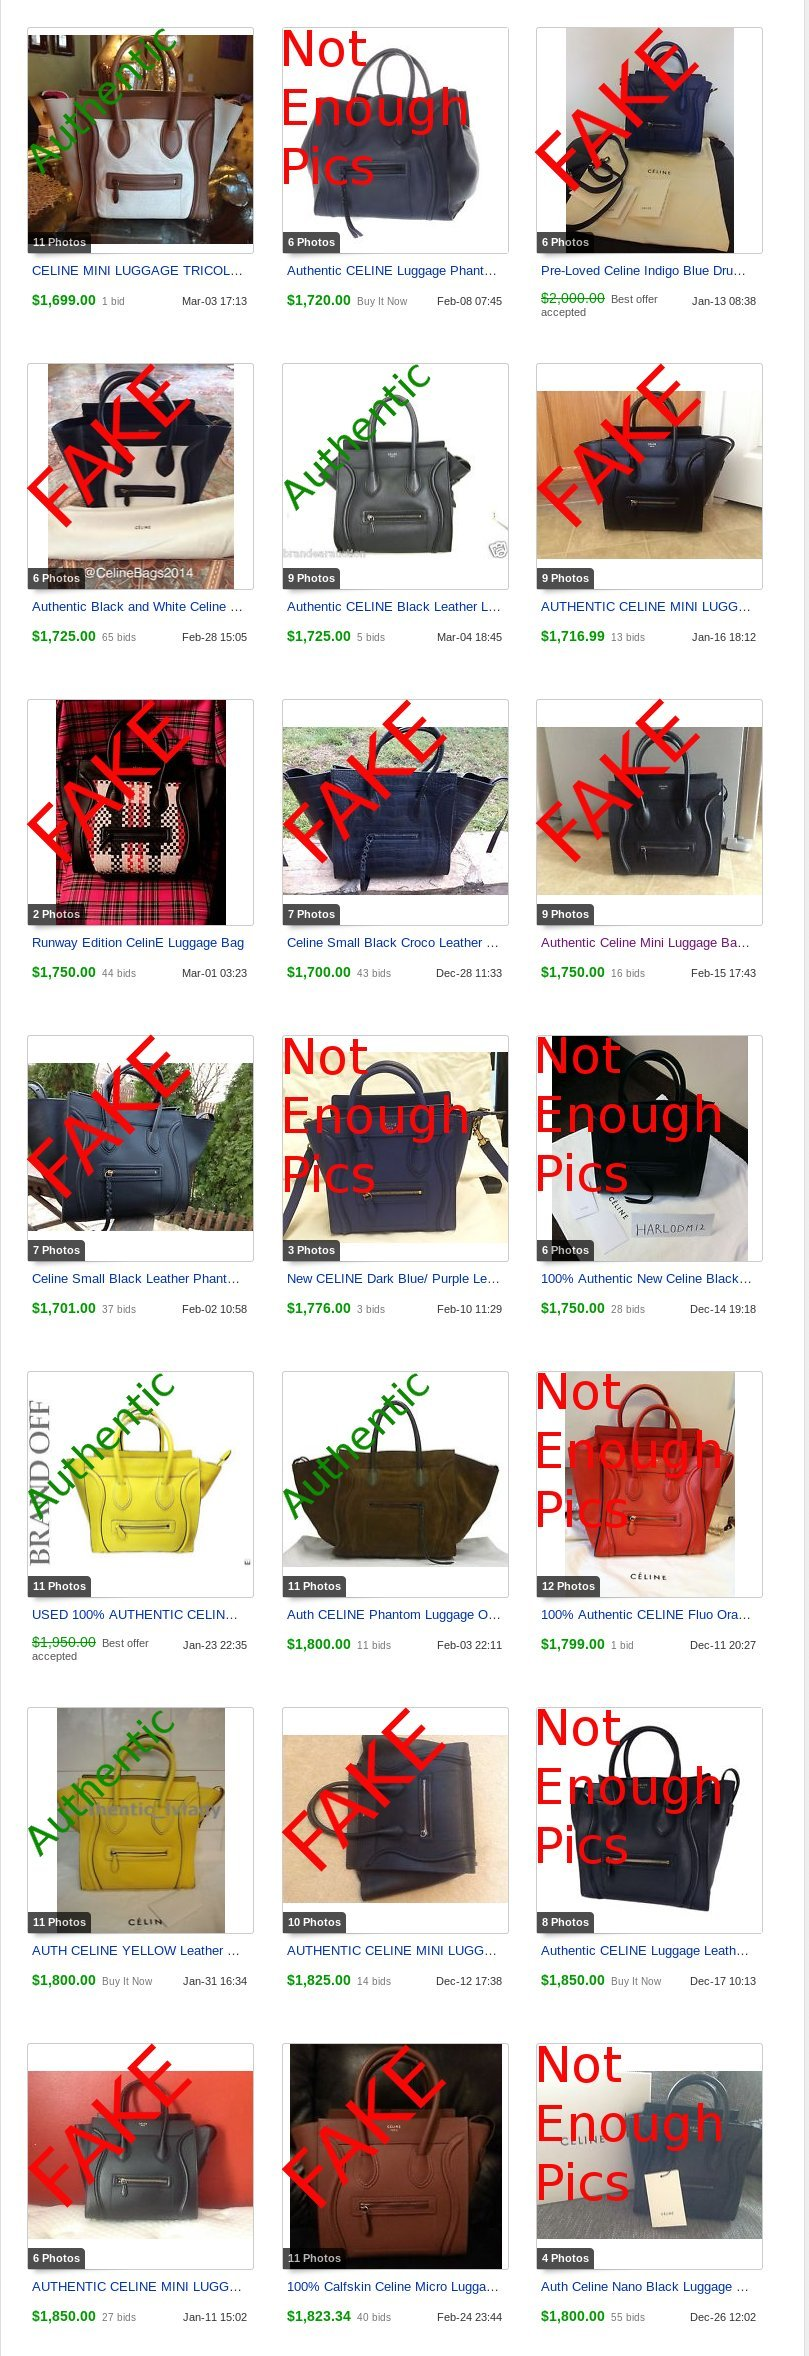 celine mini luggage buy online - Counterfeit Celine Selling for LOTS of Money | Lollipuff